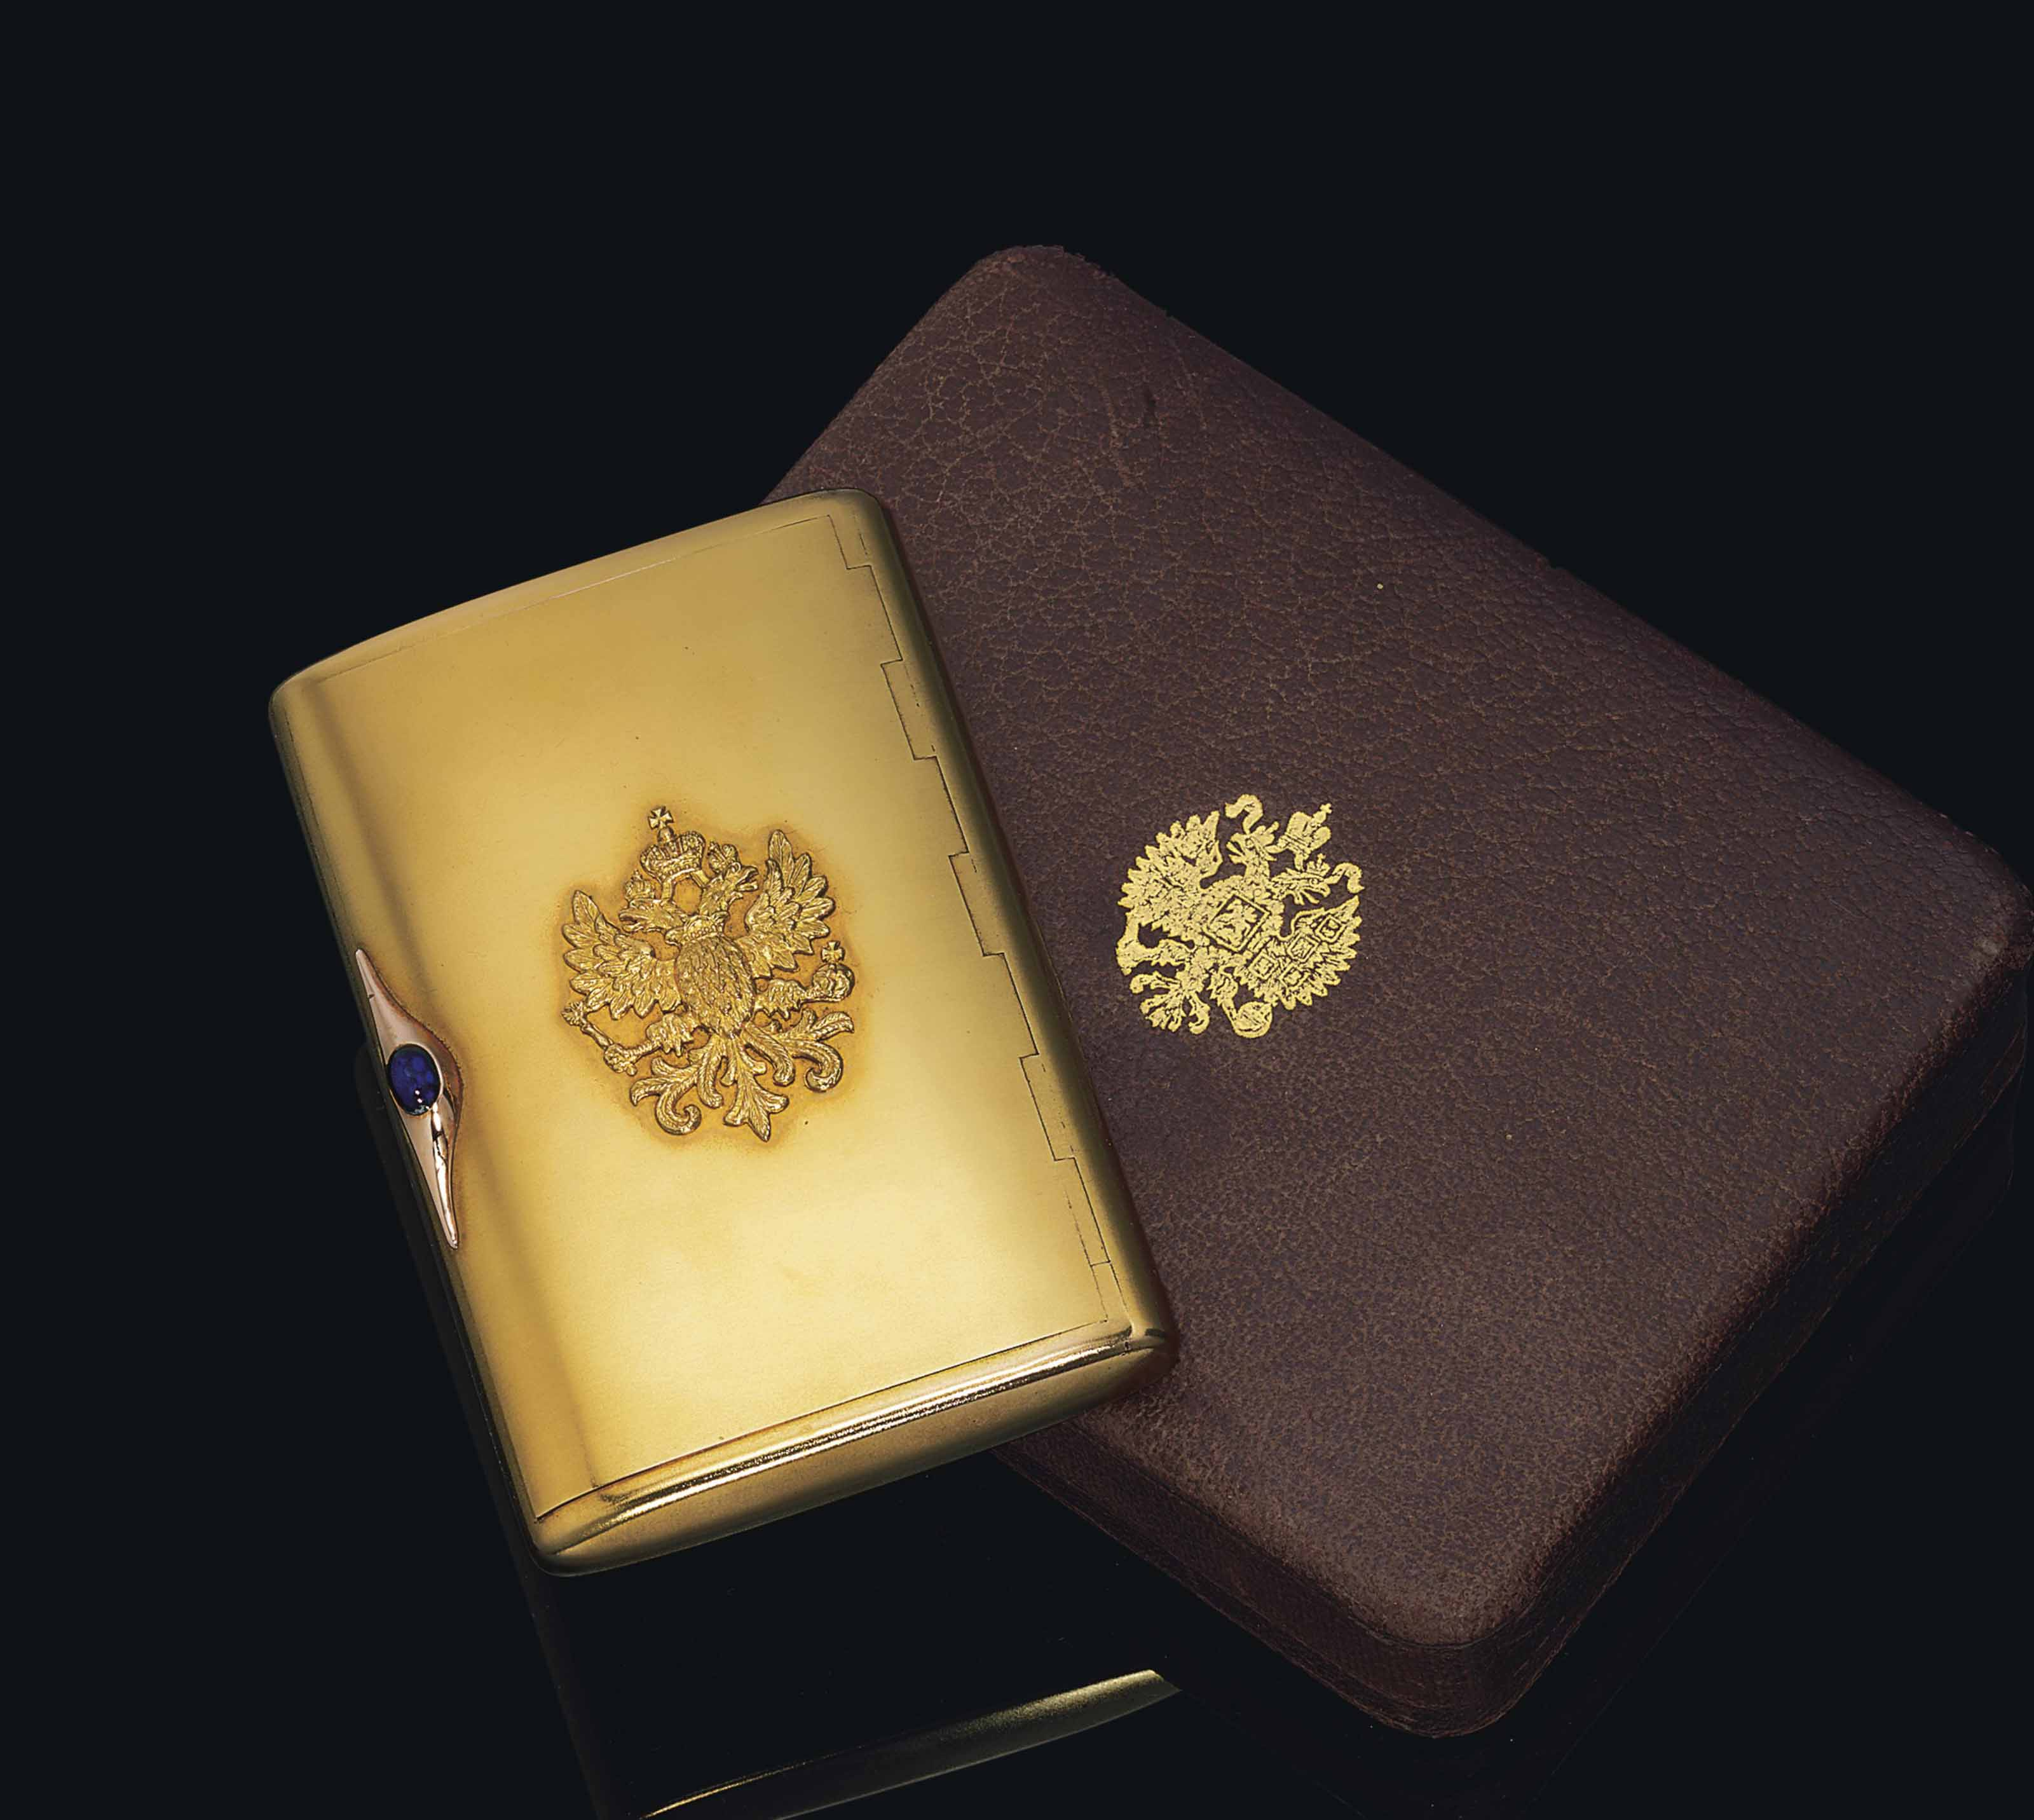 A JEWELLED TWO-COLOUR GOLD PRESENTATION CIGARETTE CASE